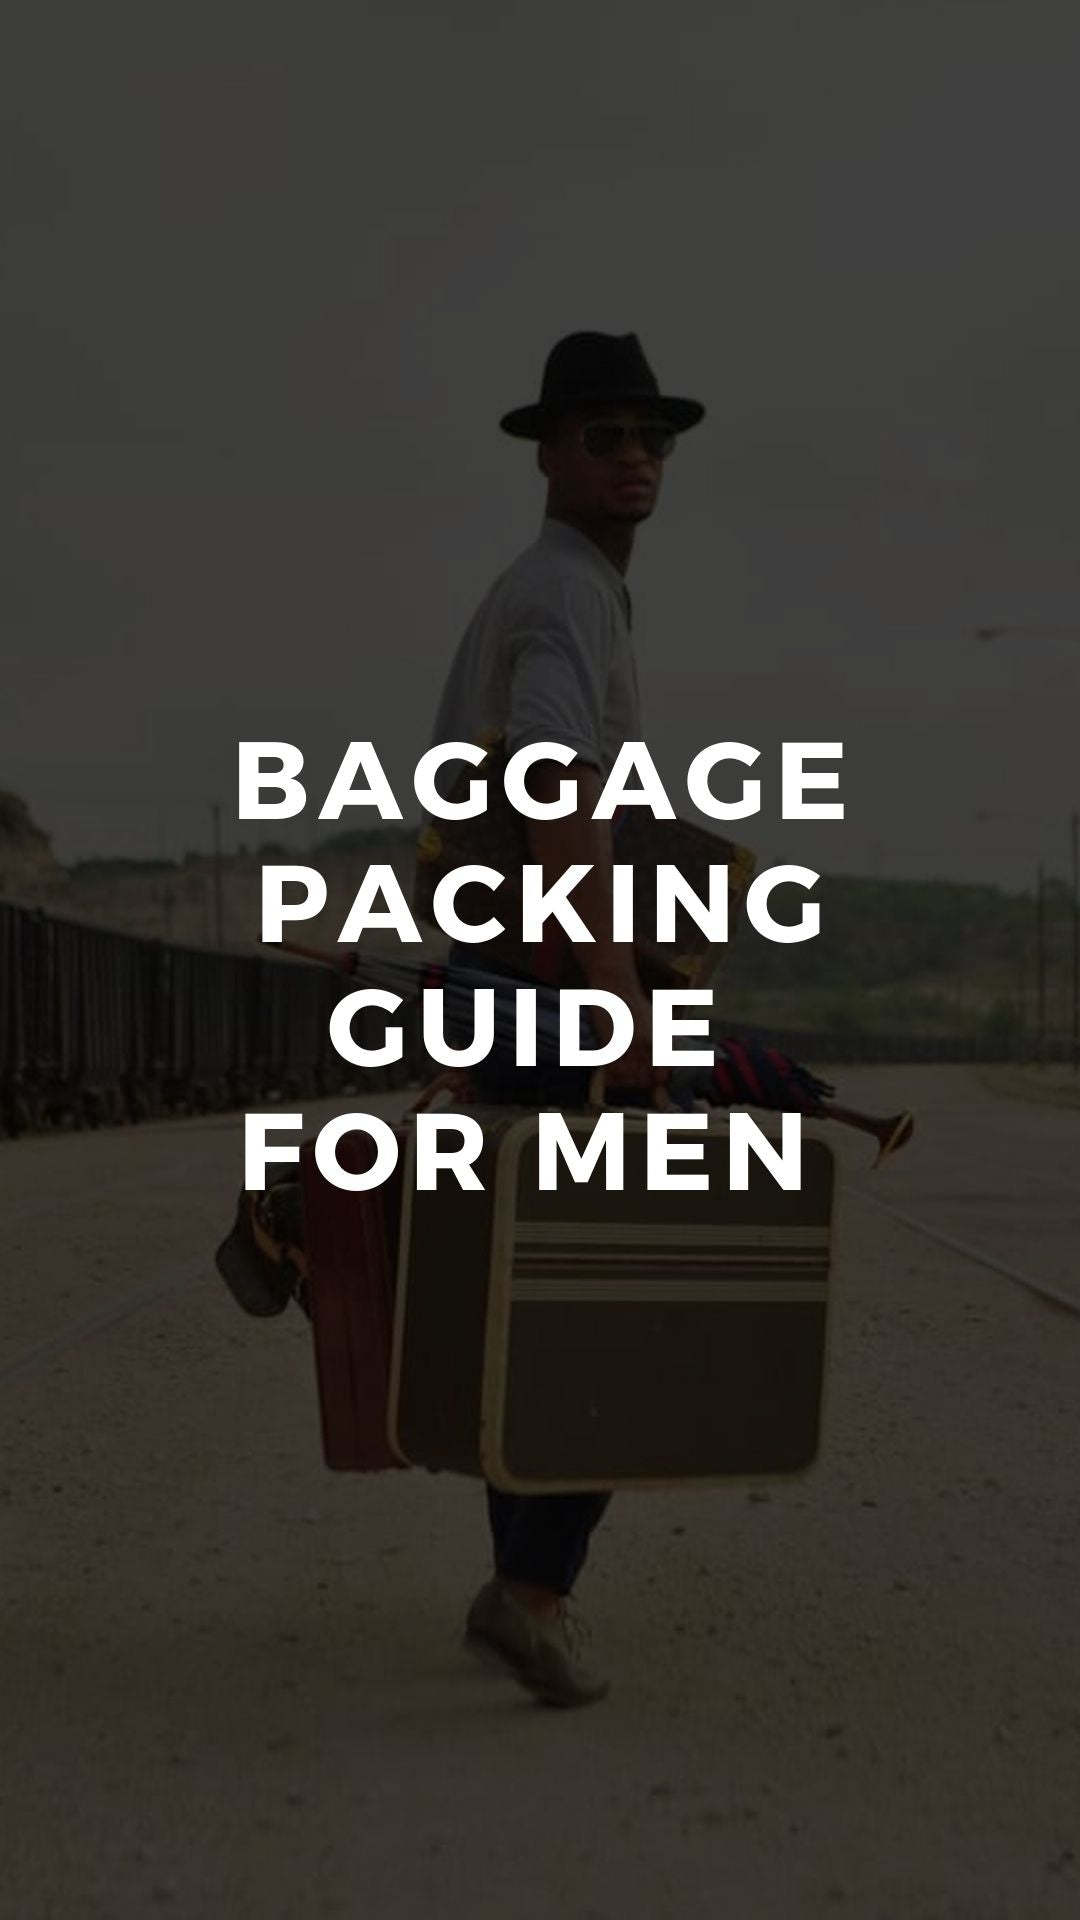 Baggage Packing Guide for Men